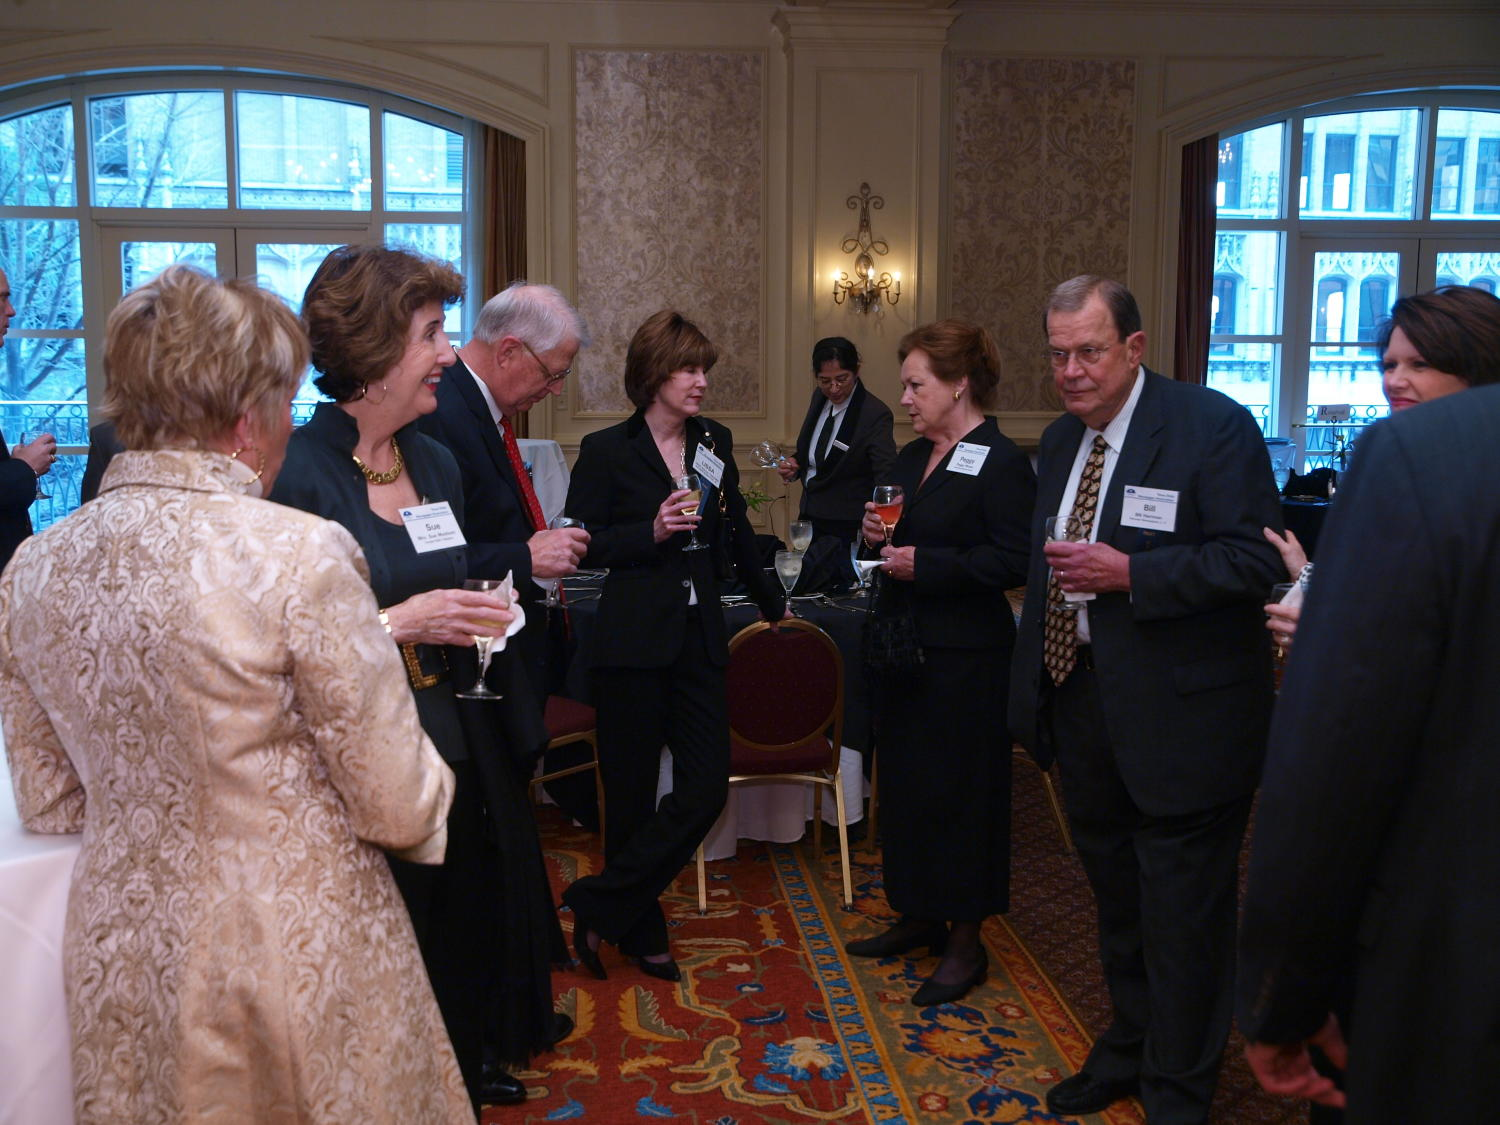 [Many guests in attendance at the TDNA dinner], Photograph of many guests, dressed in their finest attire, in attendance at the 2008 Texas Daily Newspaper Association annual conference awards dinner, held at The Westin Riverwalk Hotel in San Antonio, Texas. Sue Mayborn can be seen among the crowd of guests.,